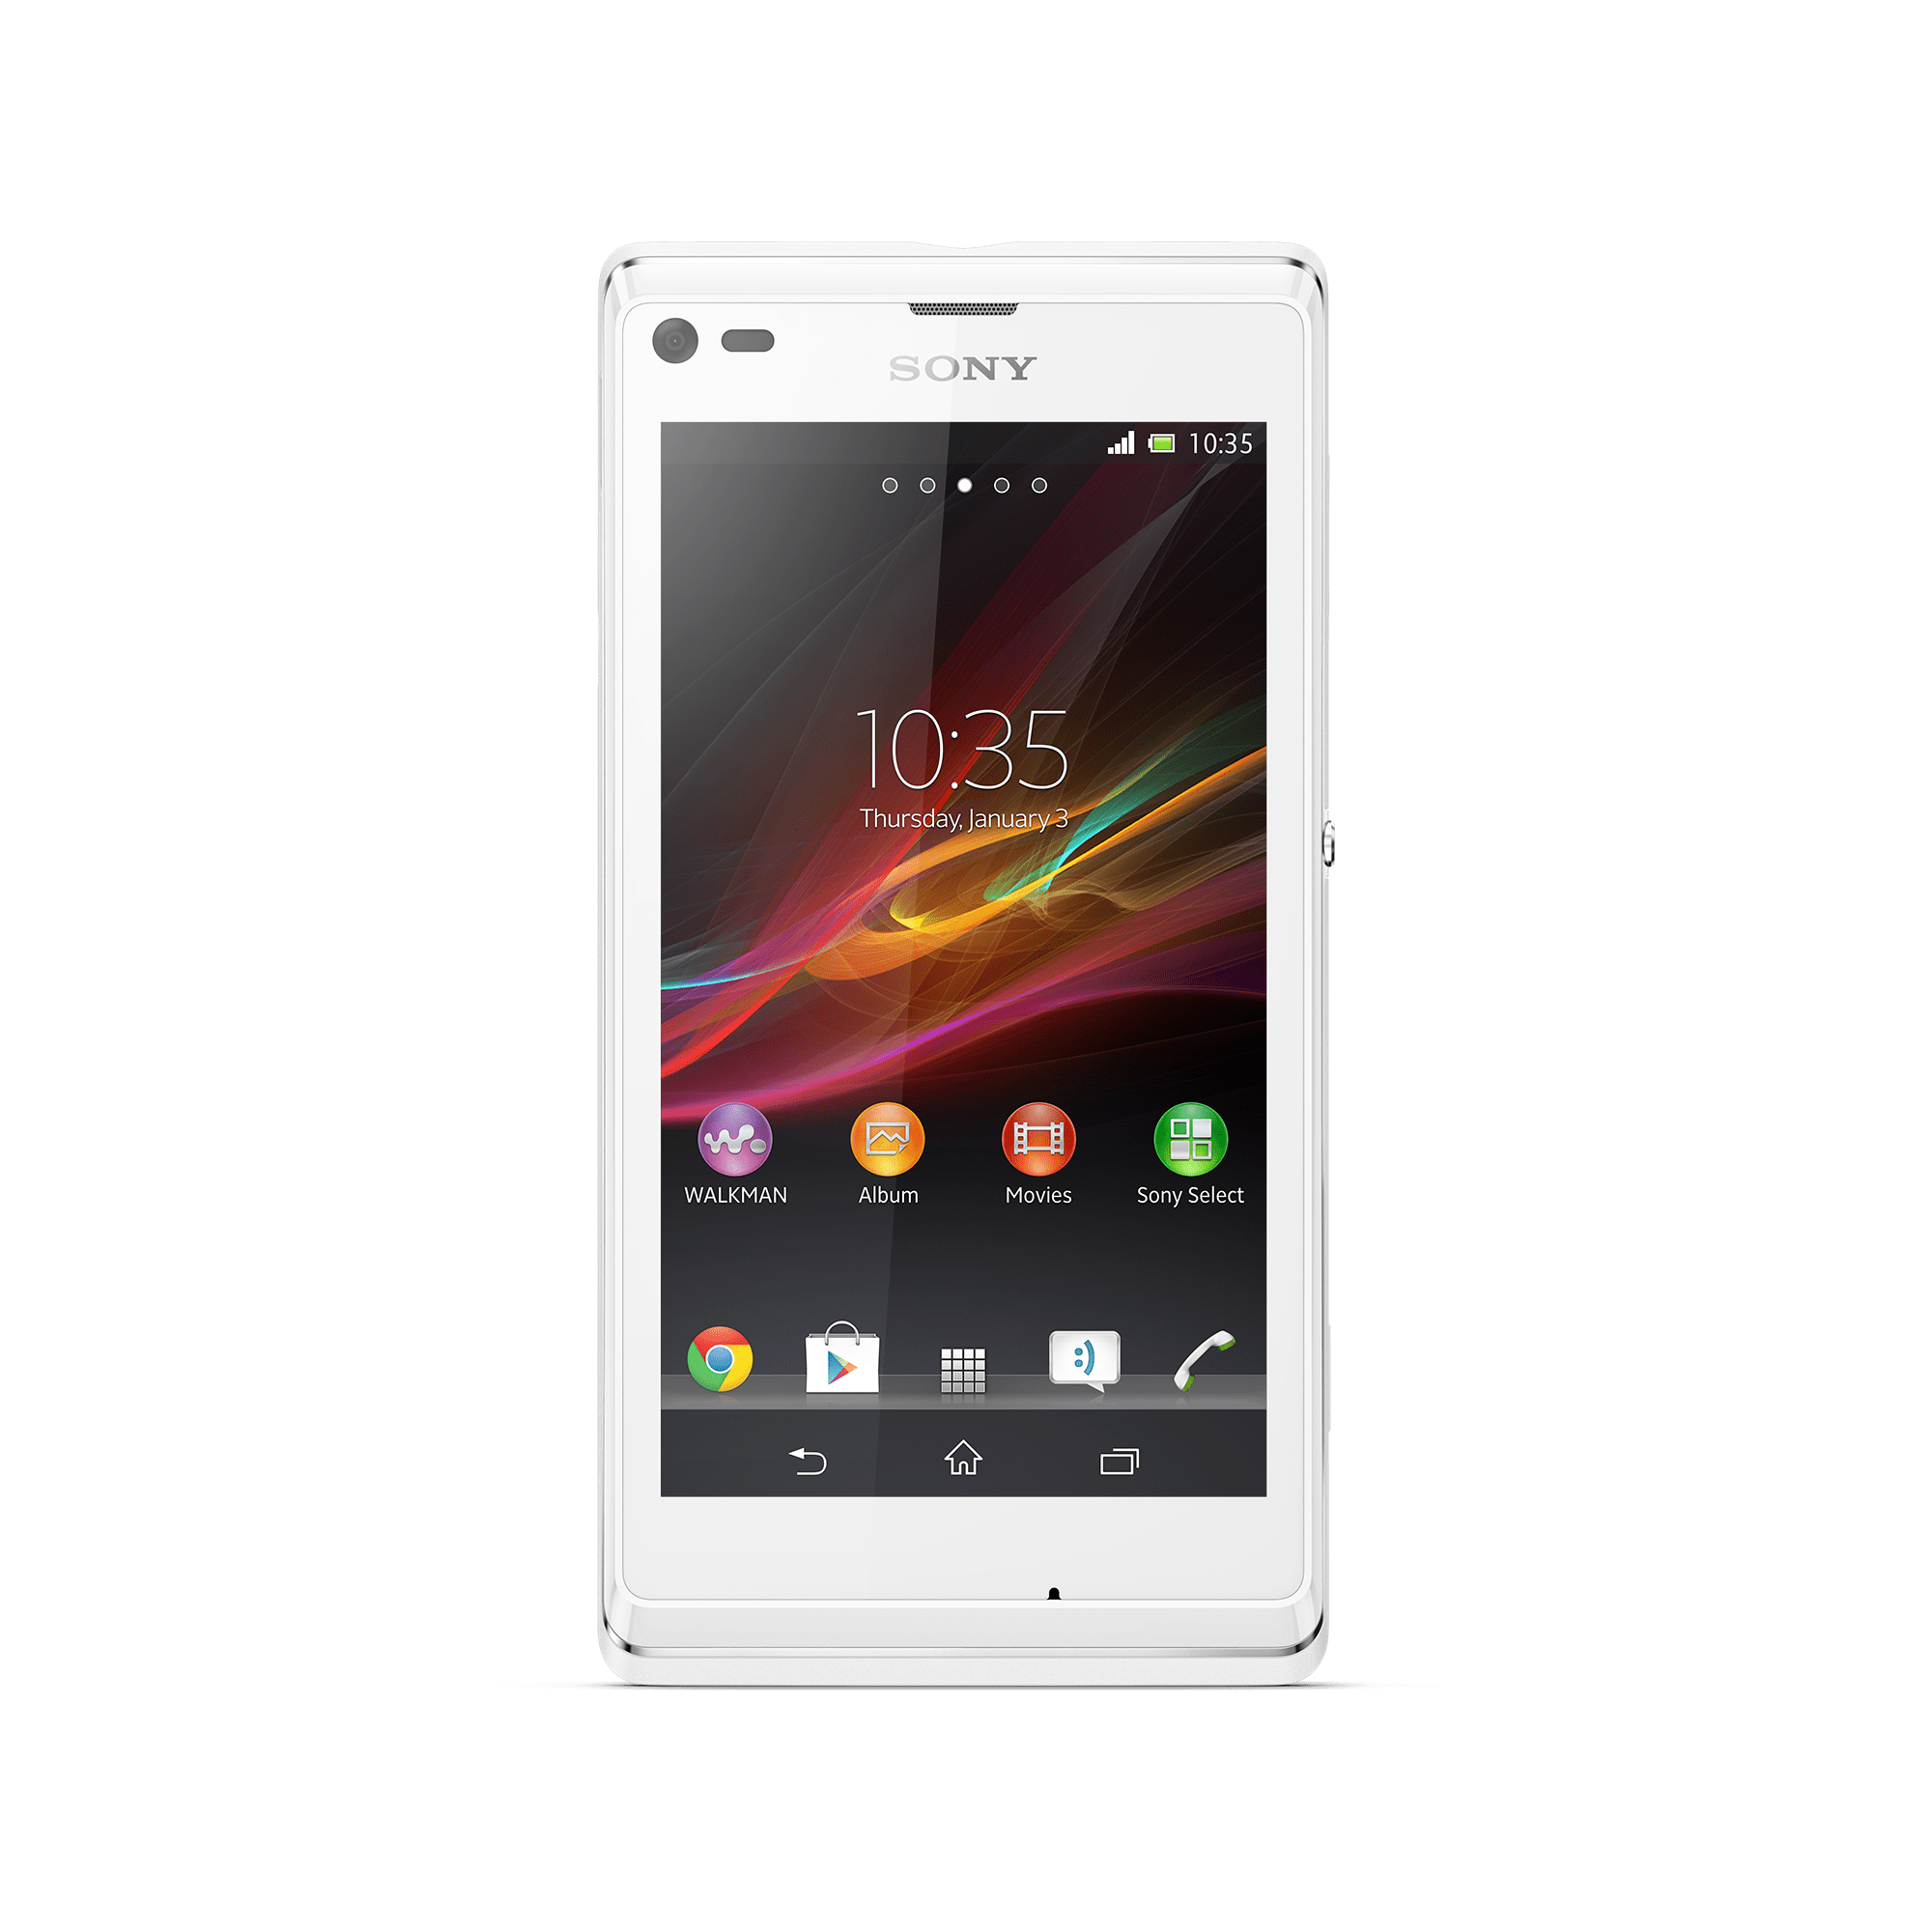 Sony xperia l sony xperia z2 sony xperia s sony xperia z5 compact.